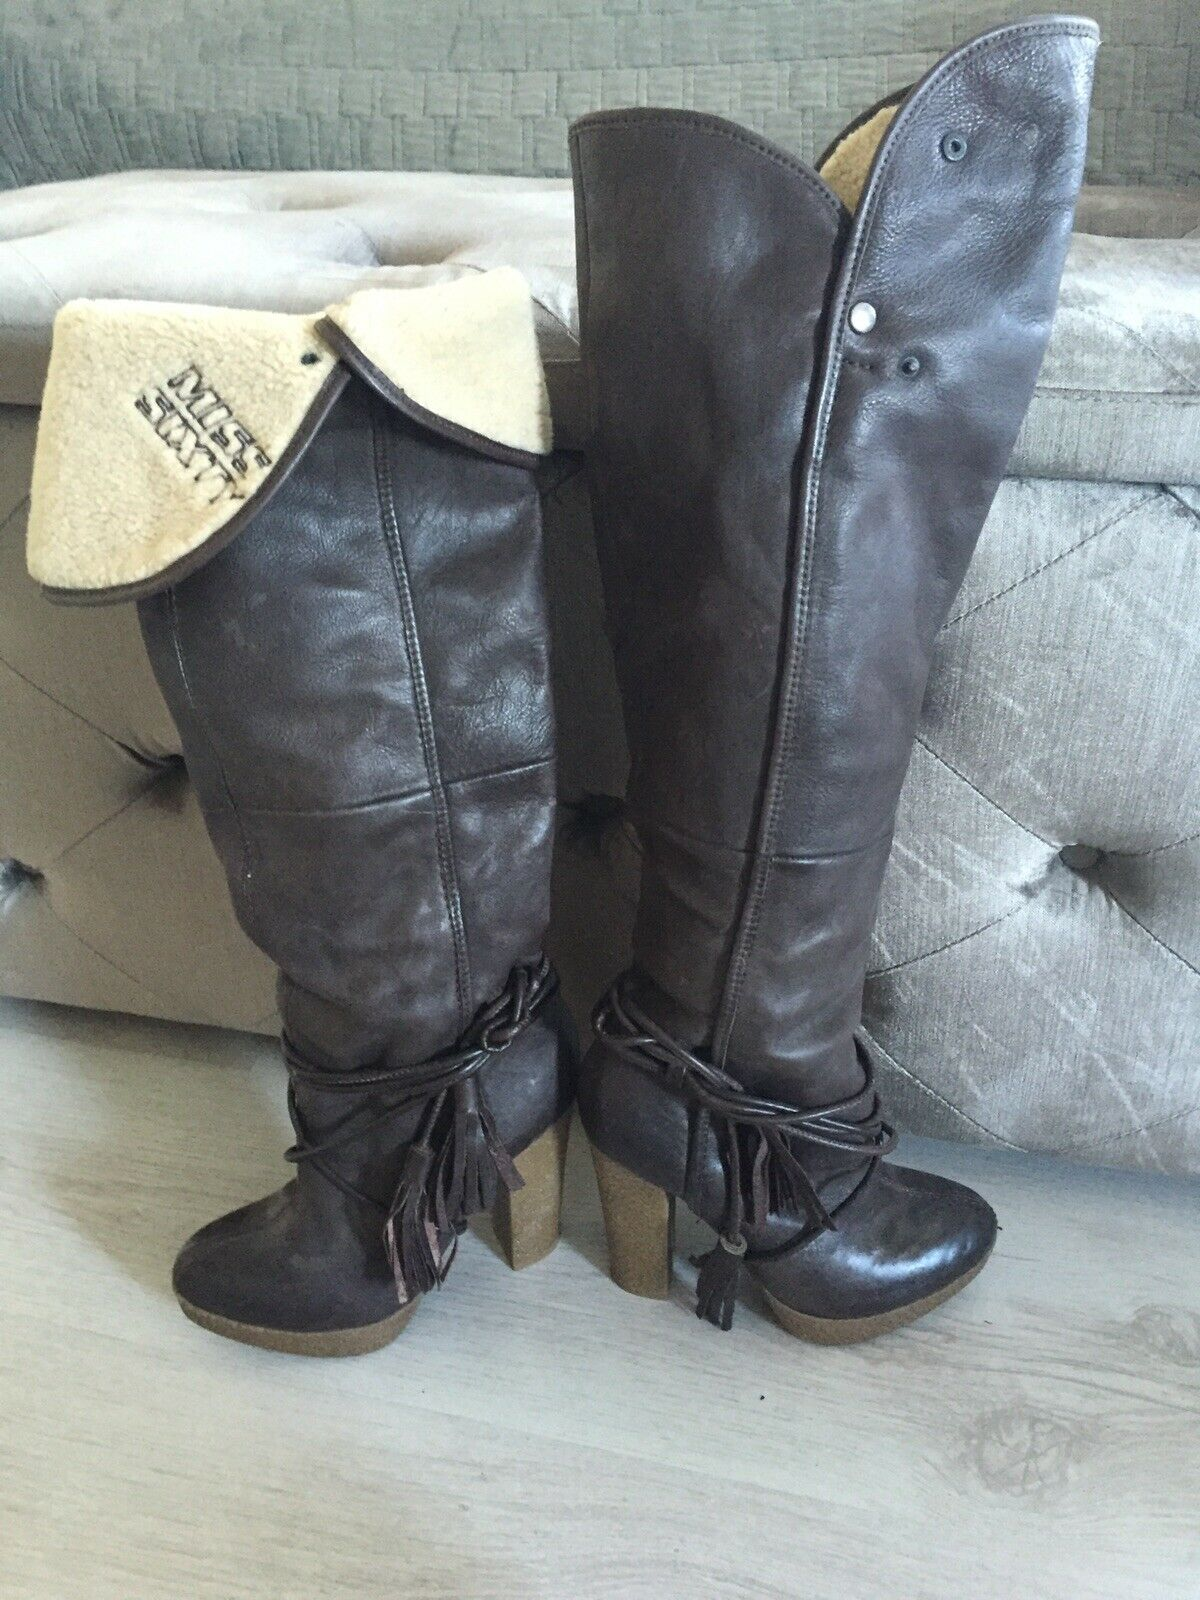 68f282d745c Miss Sixty Boots Over The Knee Uk4 nvzsjm6995-Women s Boots - www ...